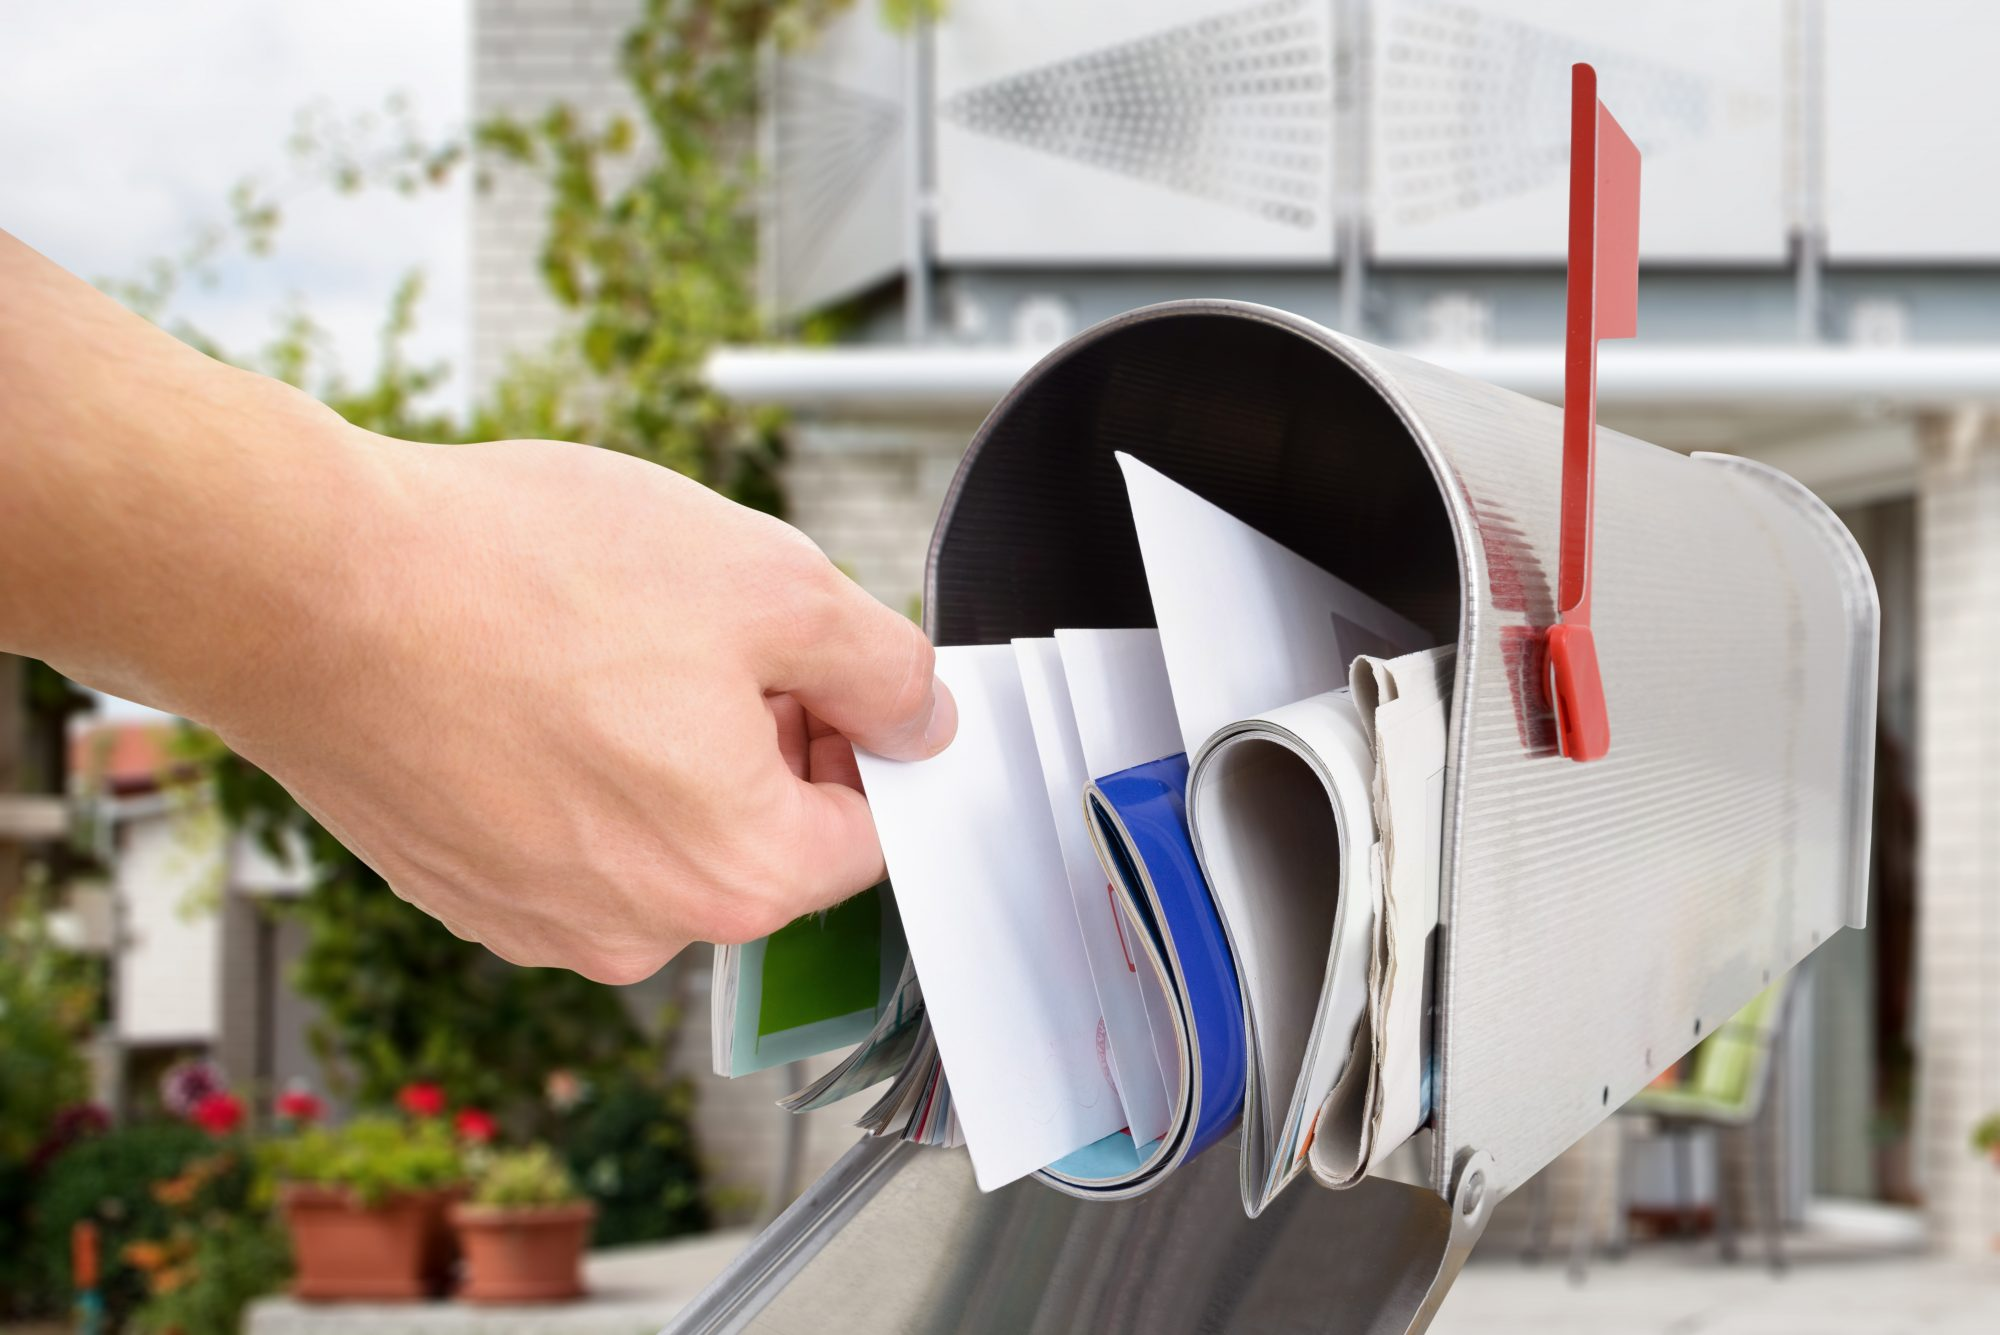 Hand Getting Mail from Mailbox